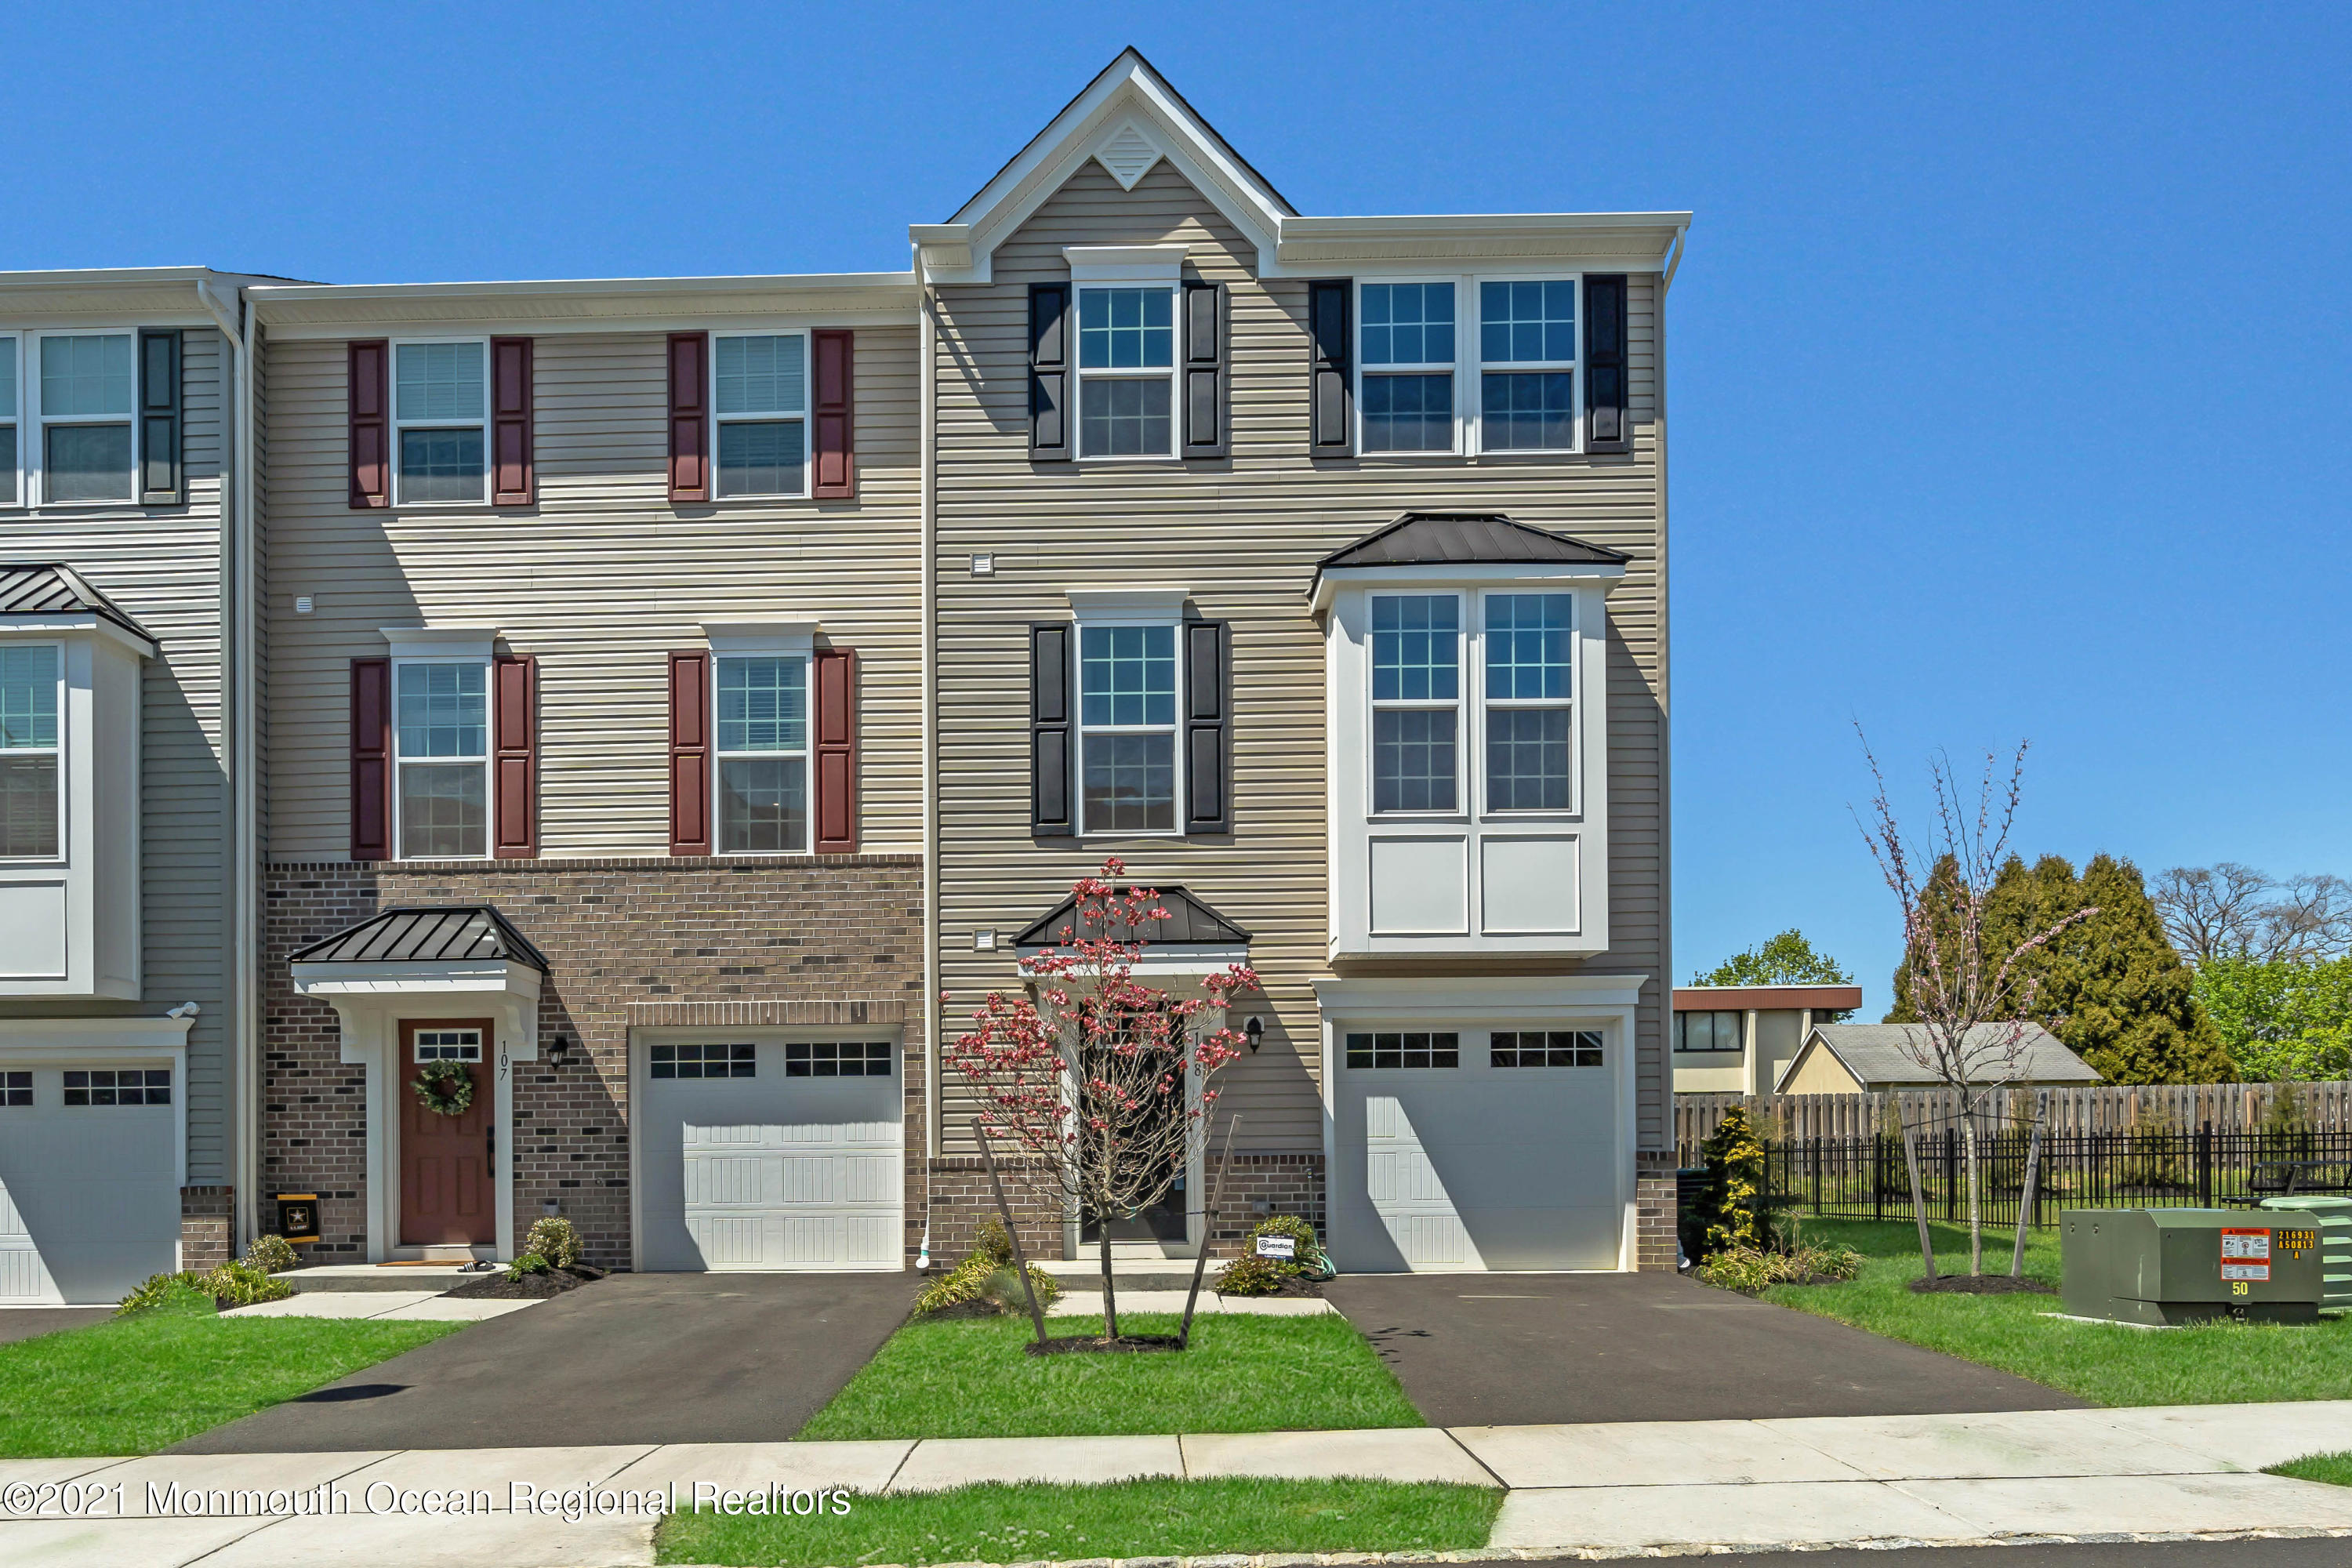 108 High Point Lane, Neptune Township, New Jersey 07753, 3 Bedrooms Bedrooms, ,4 BathroomsBathrooms,Townhouse,For Sale,108 High Point Lane,3,22112981